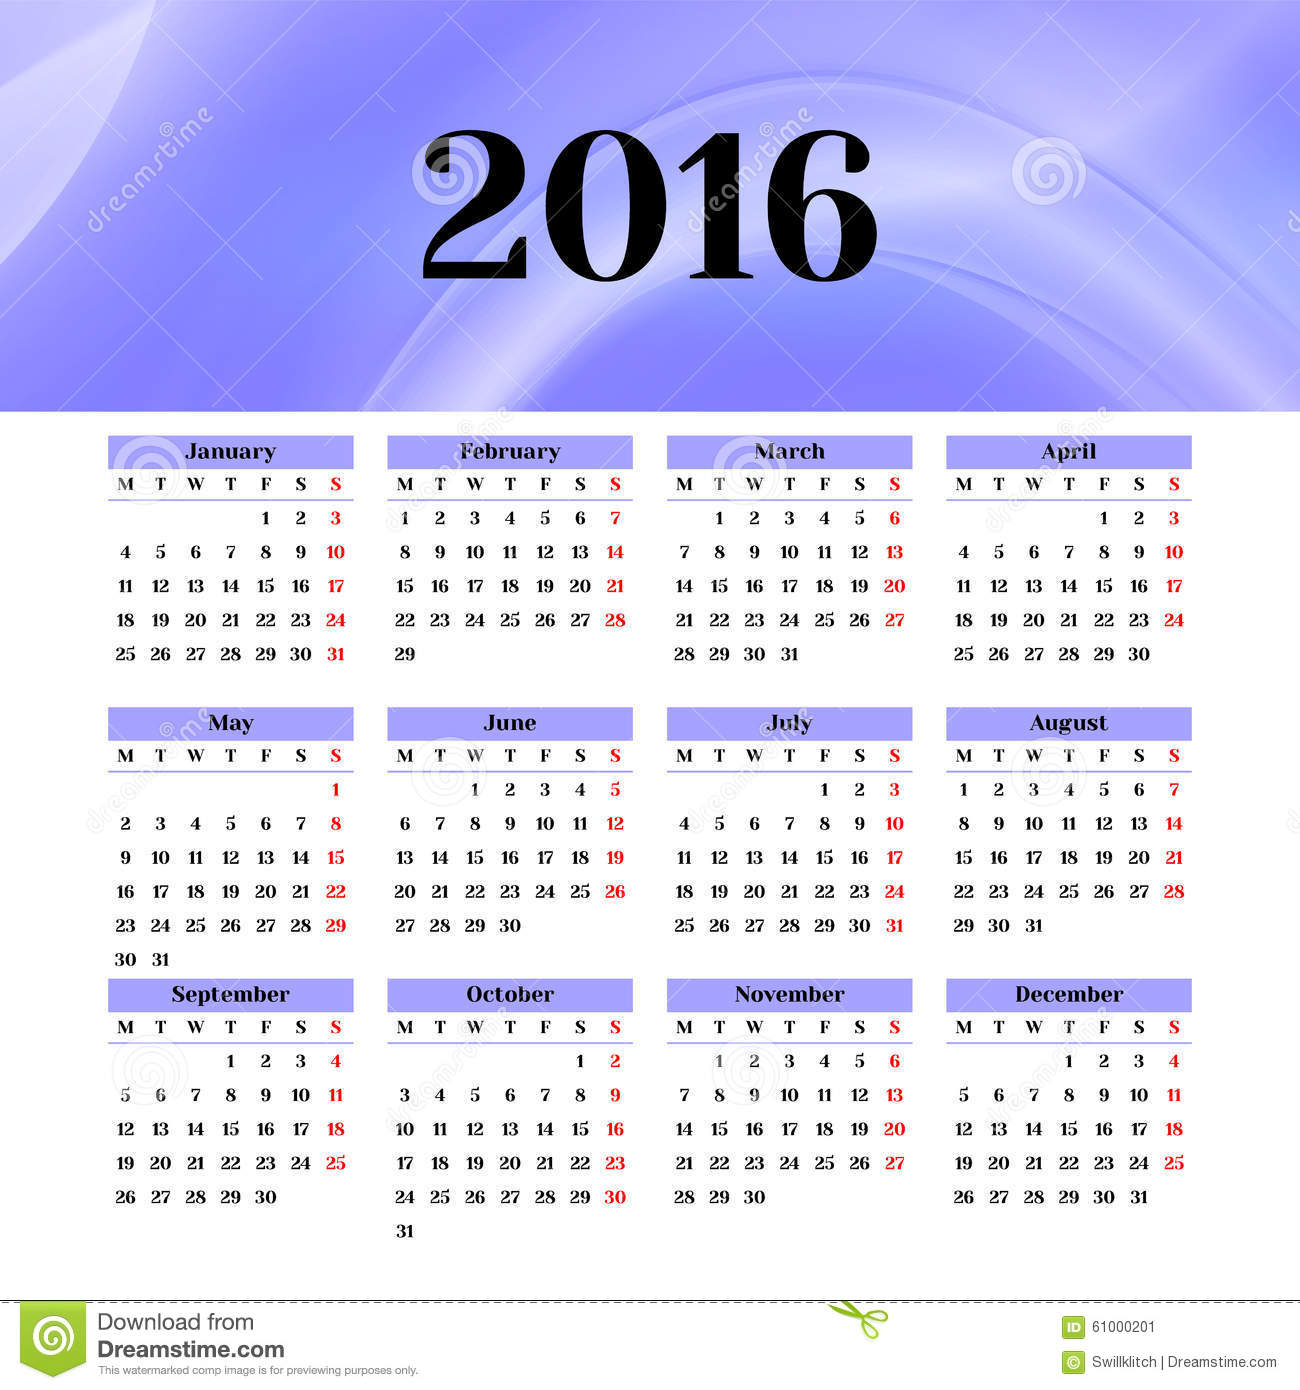 blank tear off calendar template in variety of colors vectors